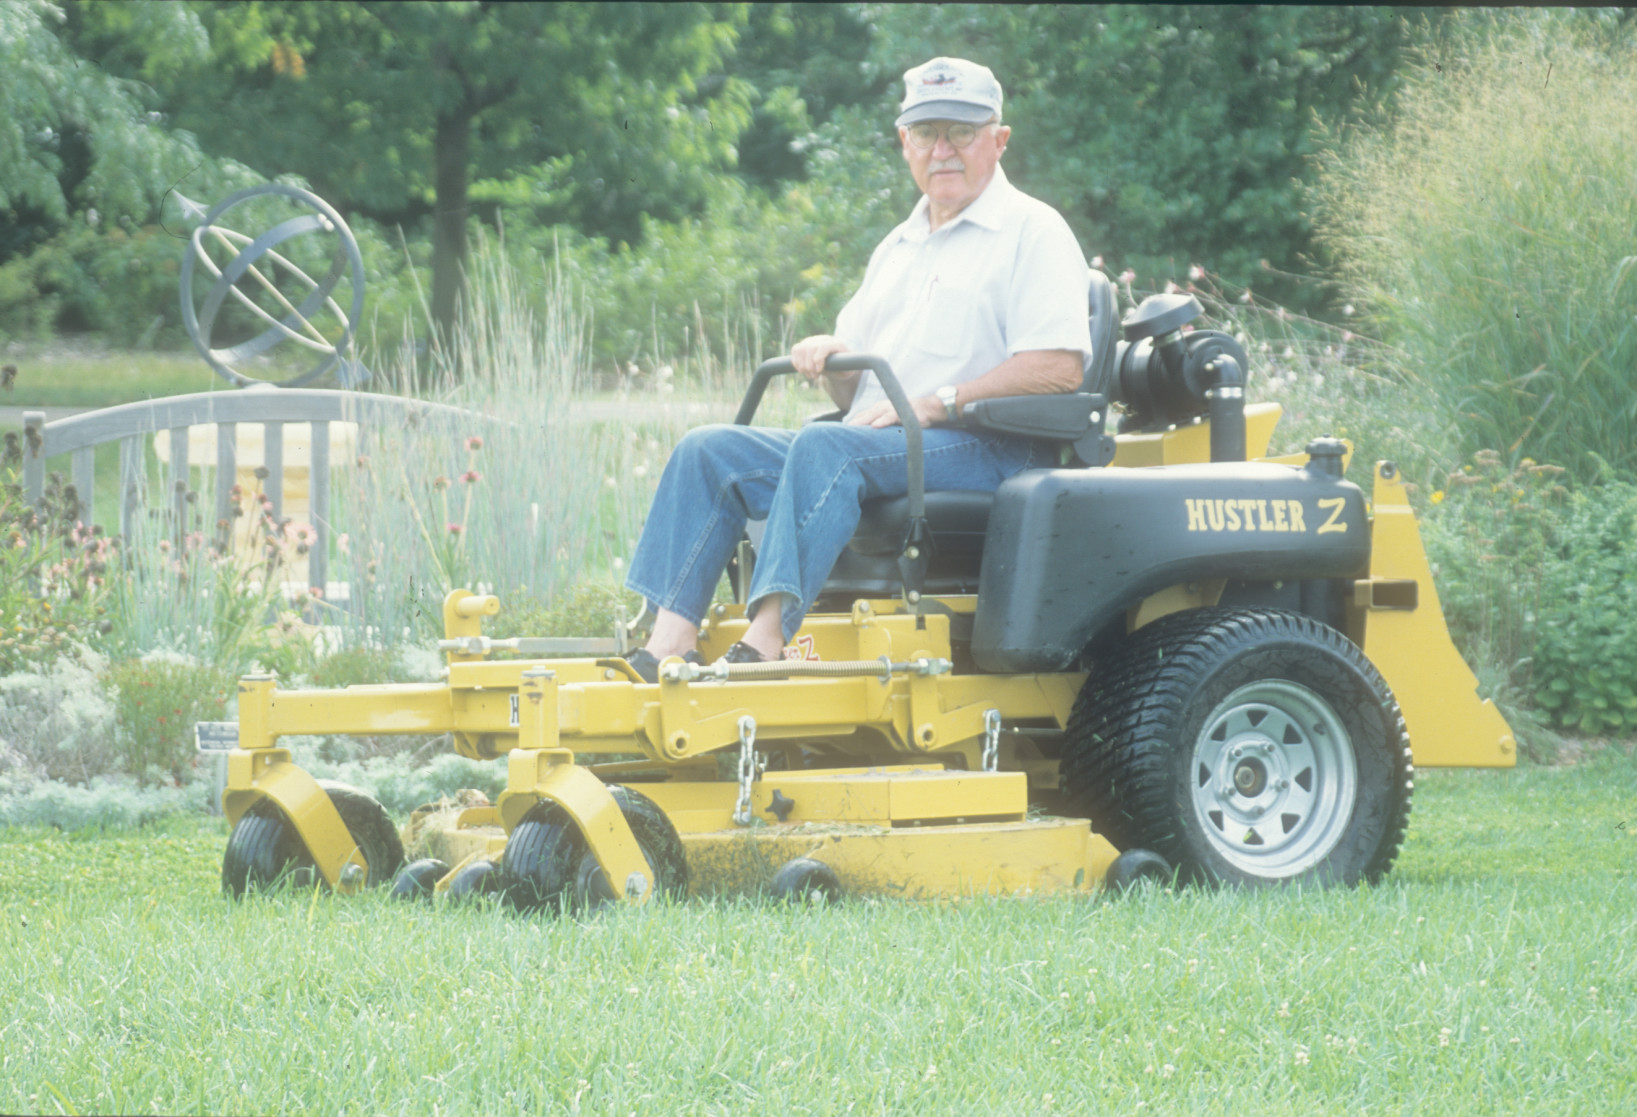 cliffbitikofer-newmower_kk_jul2002